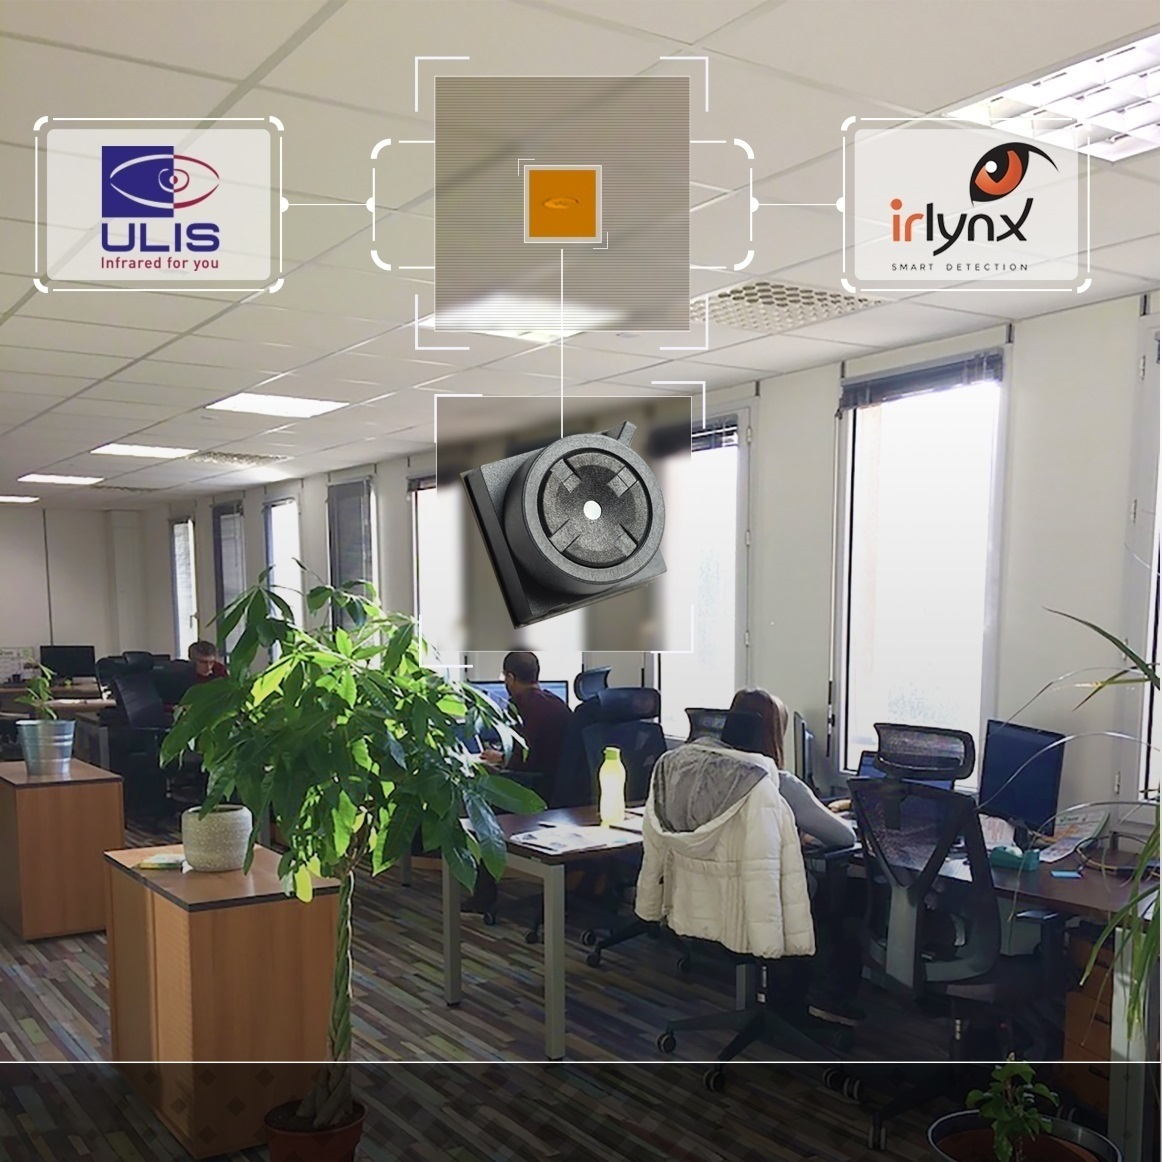 Irlynx will field test ULIS' thermal sensor in several pilot studies it is undertaking with GE Digital, NEXITY and SNCF, among other smart occupancy and people counting projects linked to optimizing open space areas and reducing building footprint